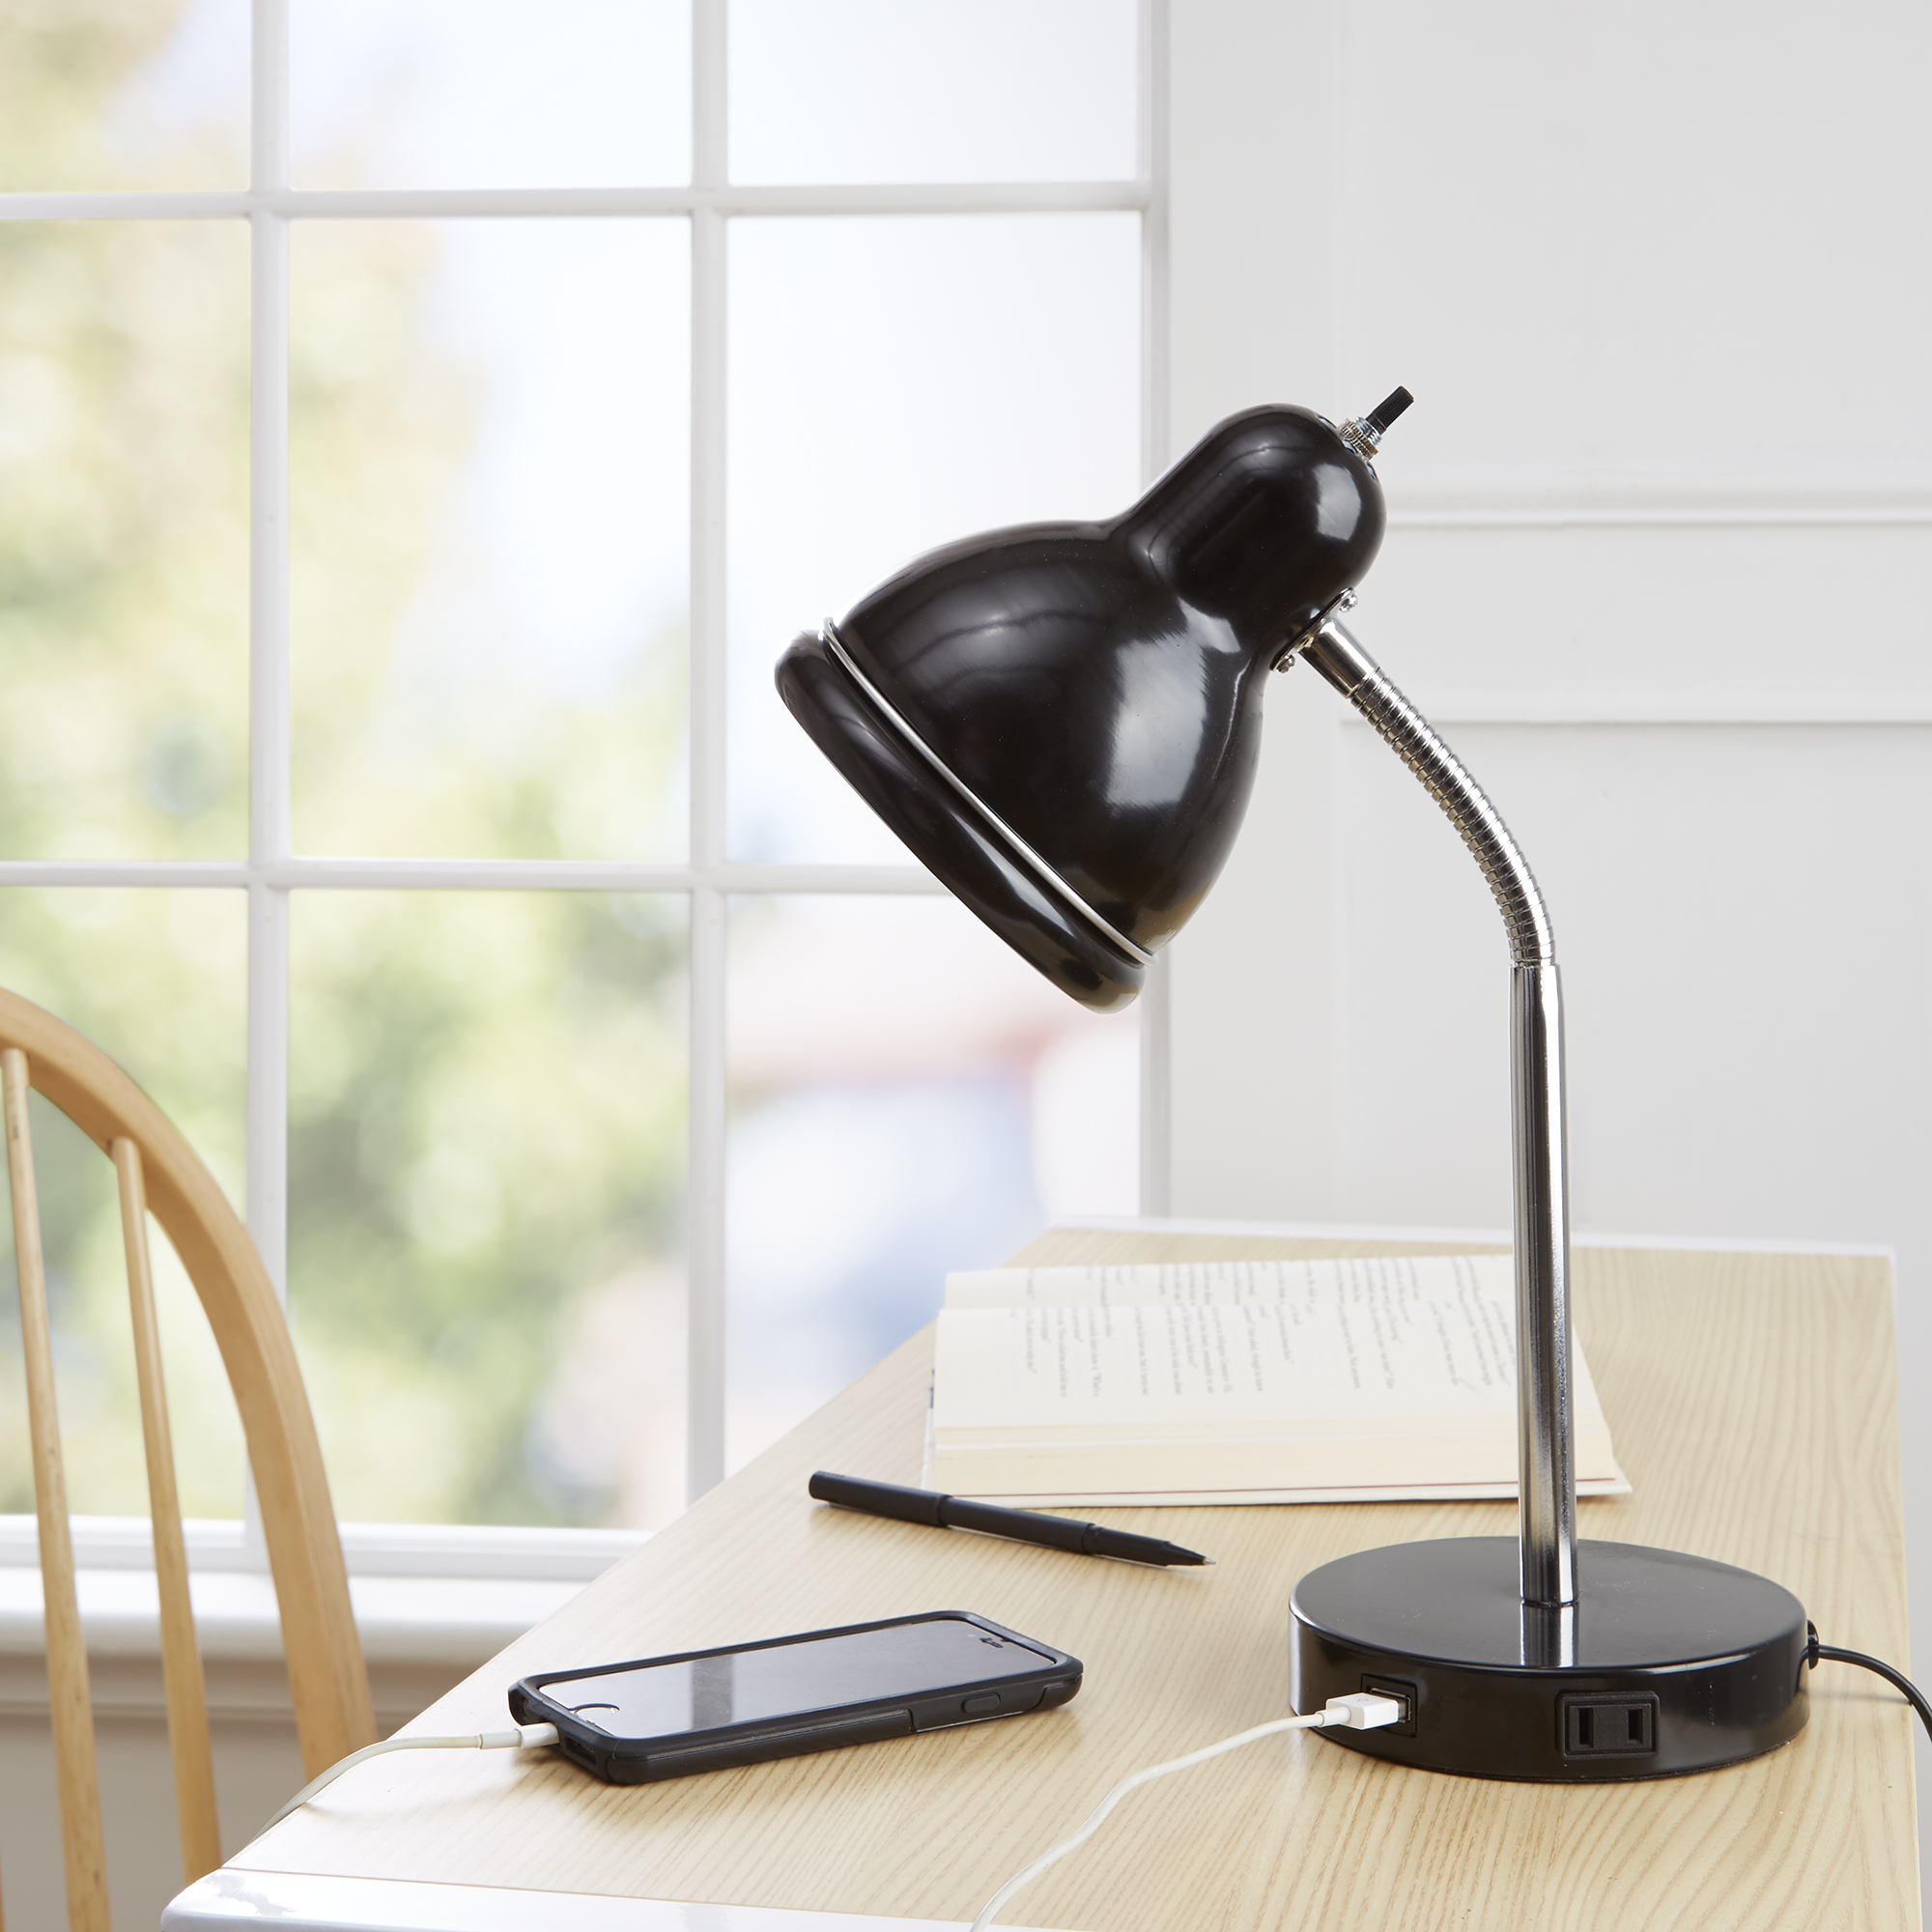 Desk Lamp Mainstays Usb Desk Lamp Black Finish With Chrome Gooseneck